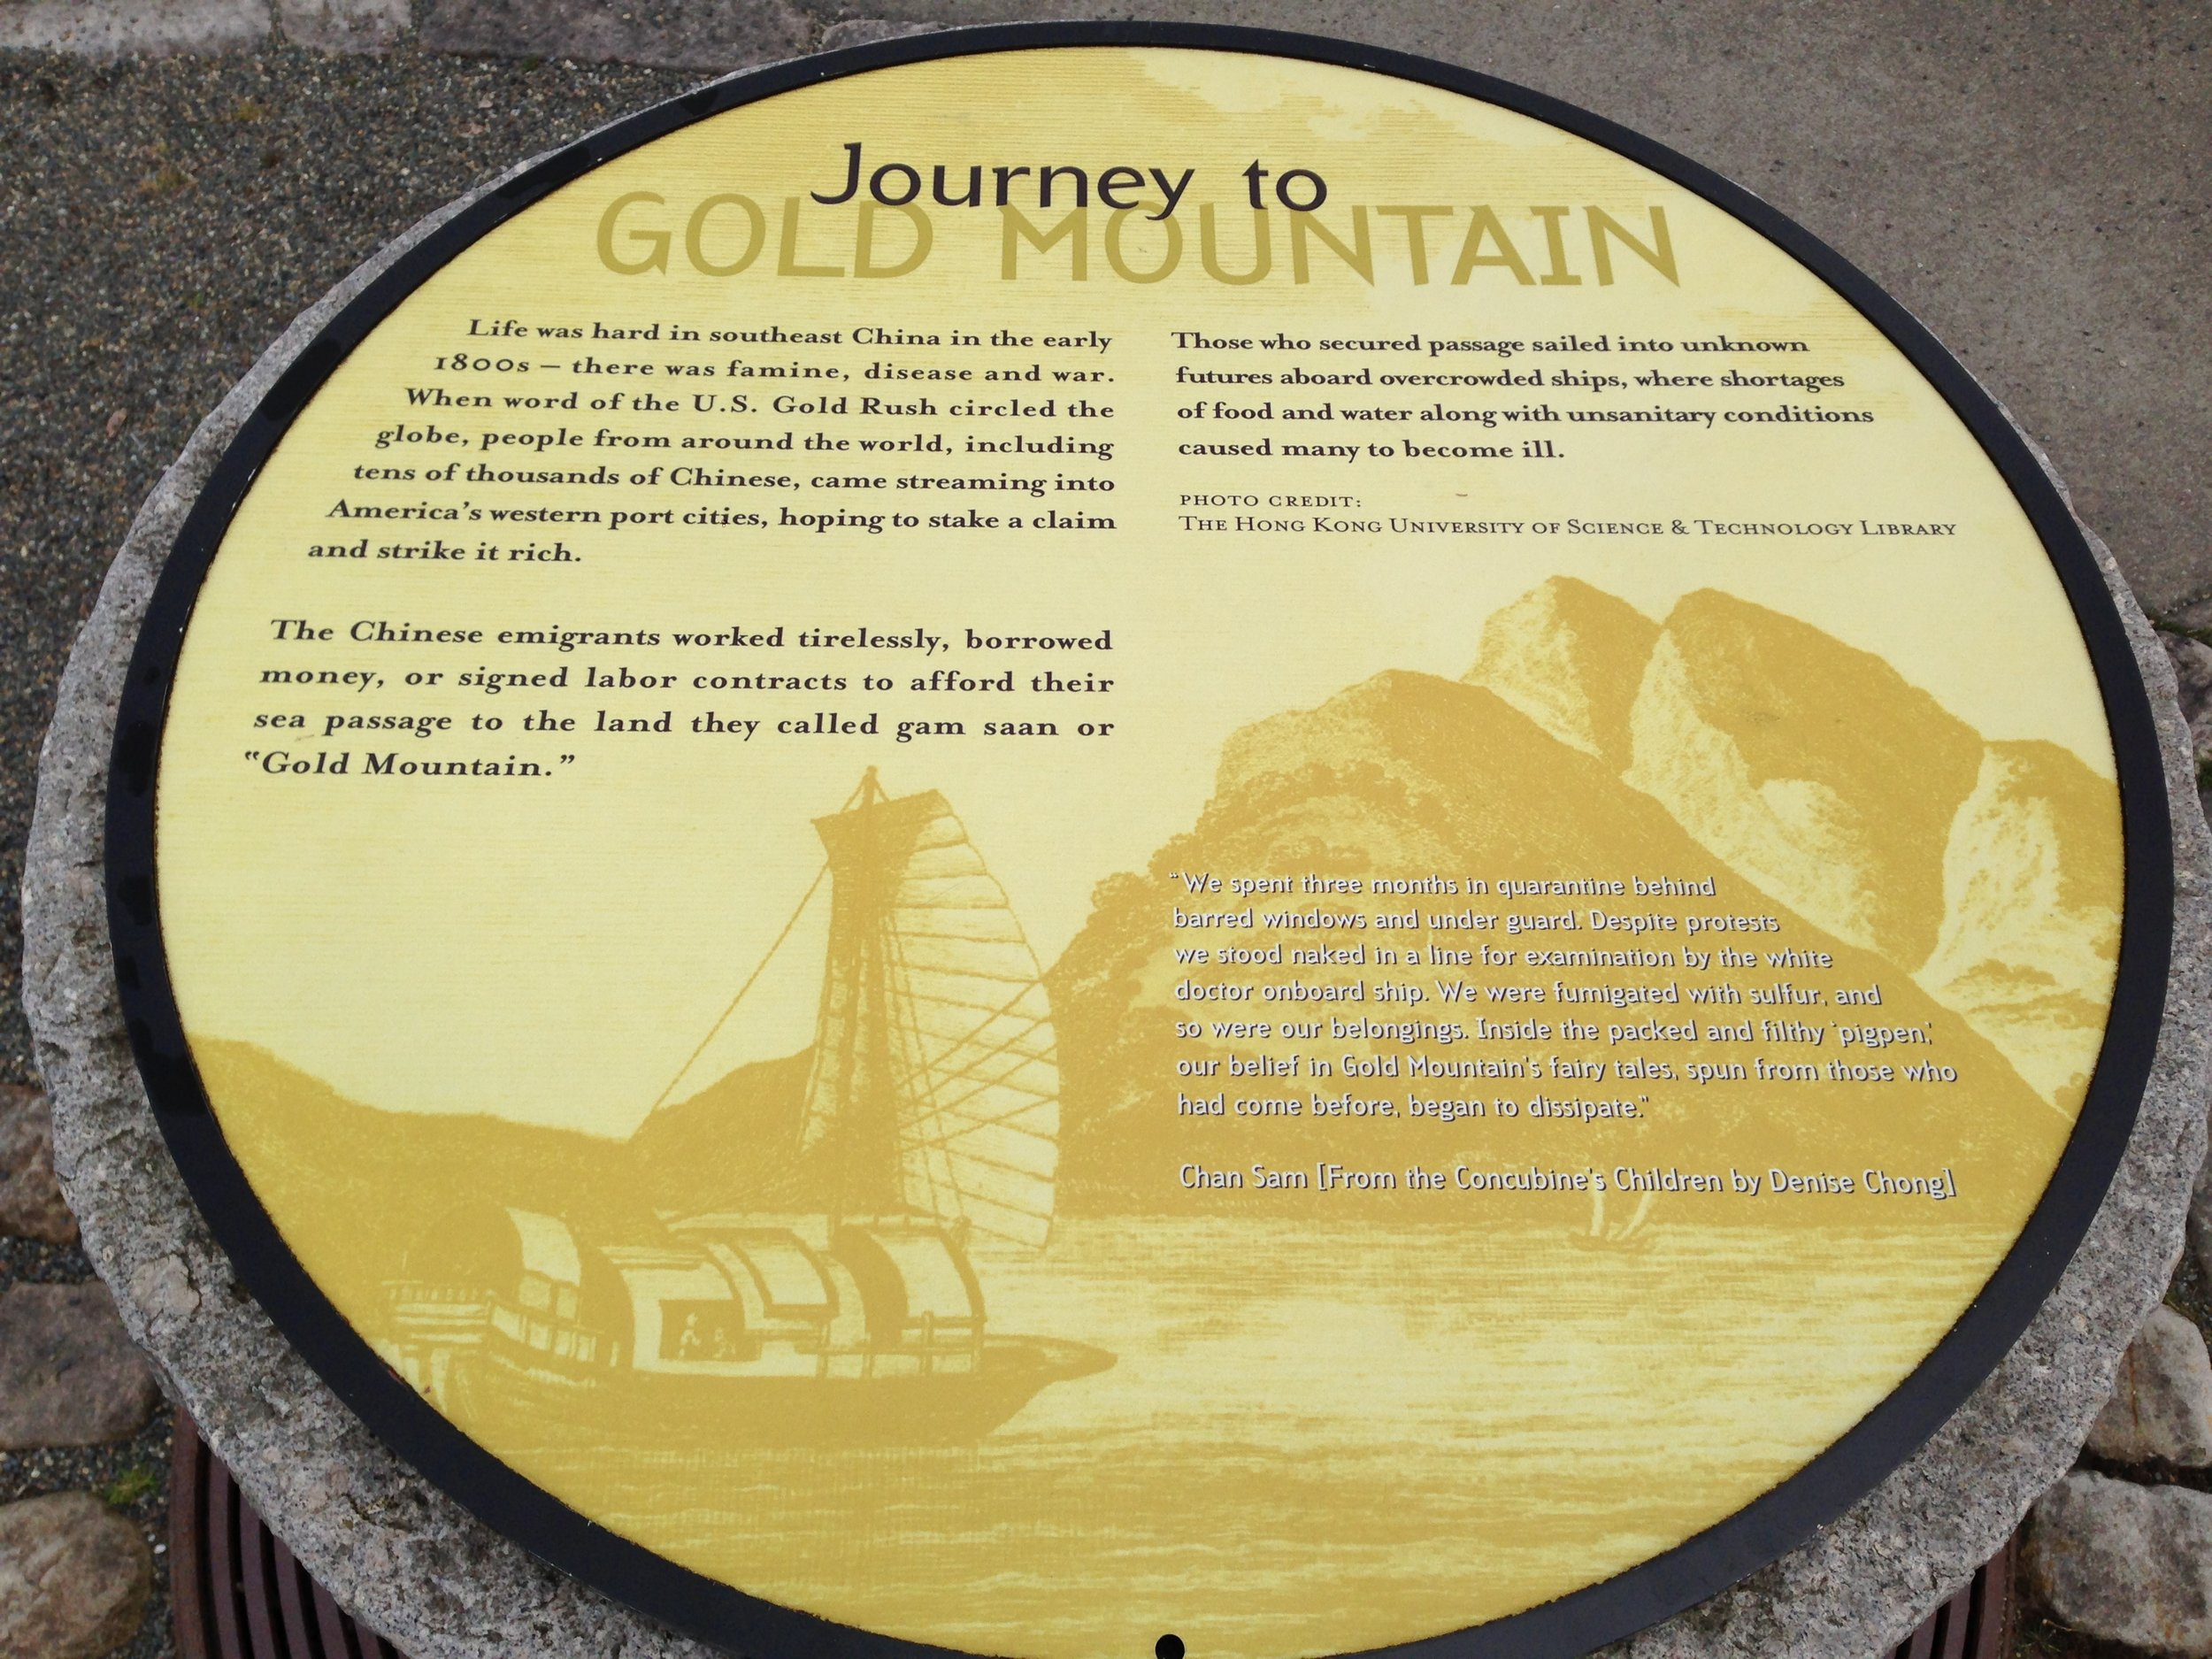 Plaque detailing the story of Chinese immigration to the American West. Cesare Bigolin.